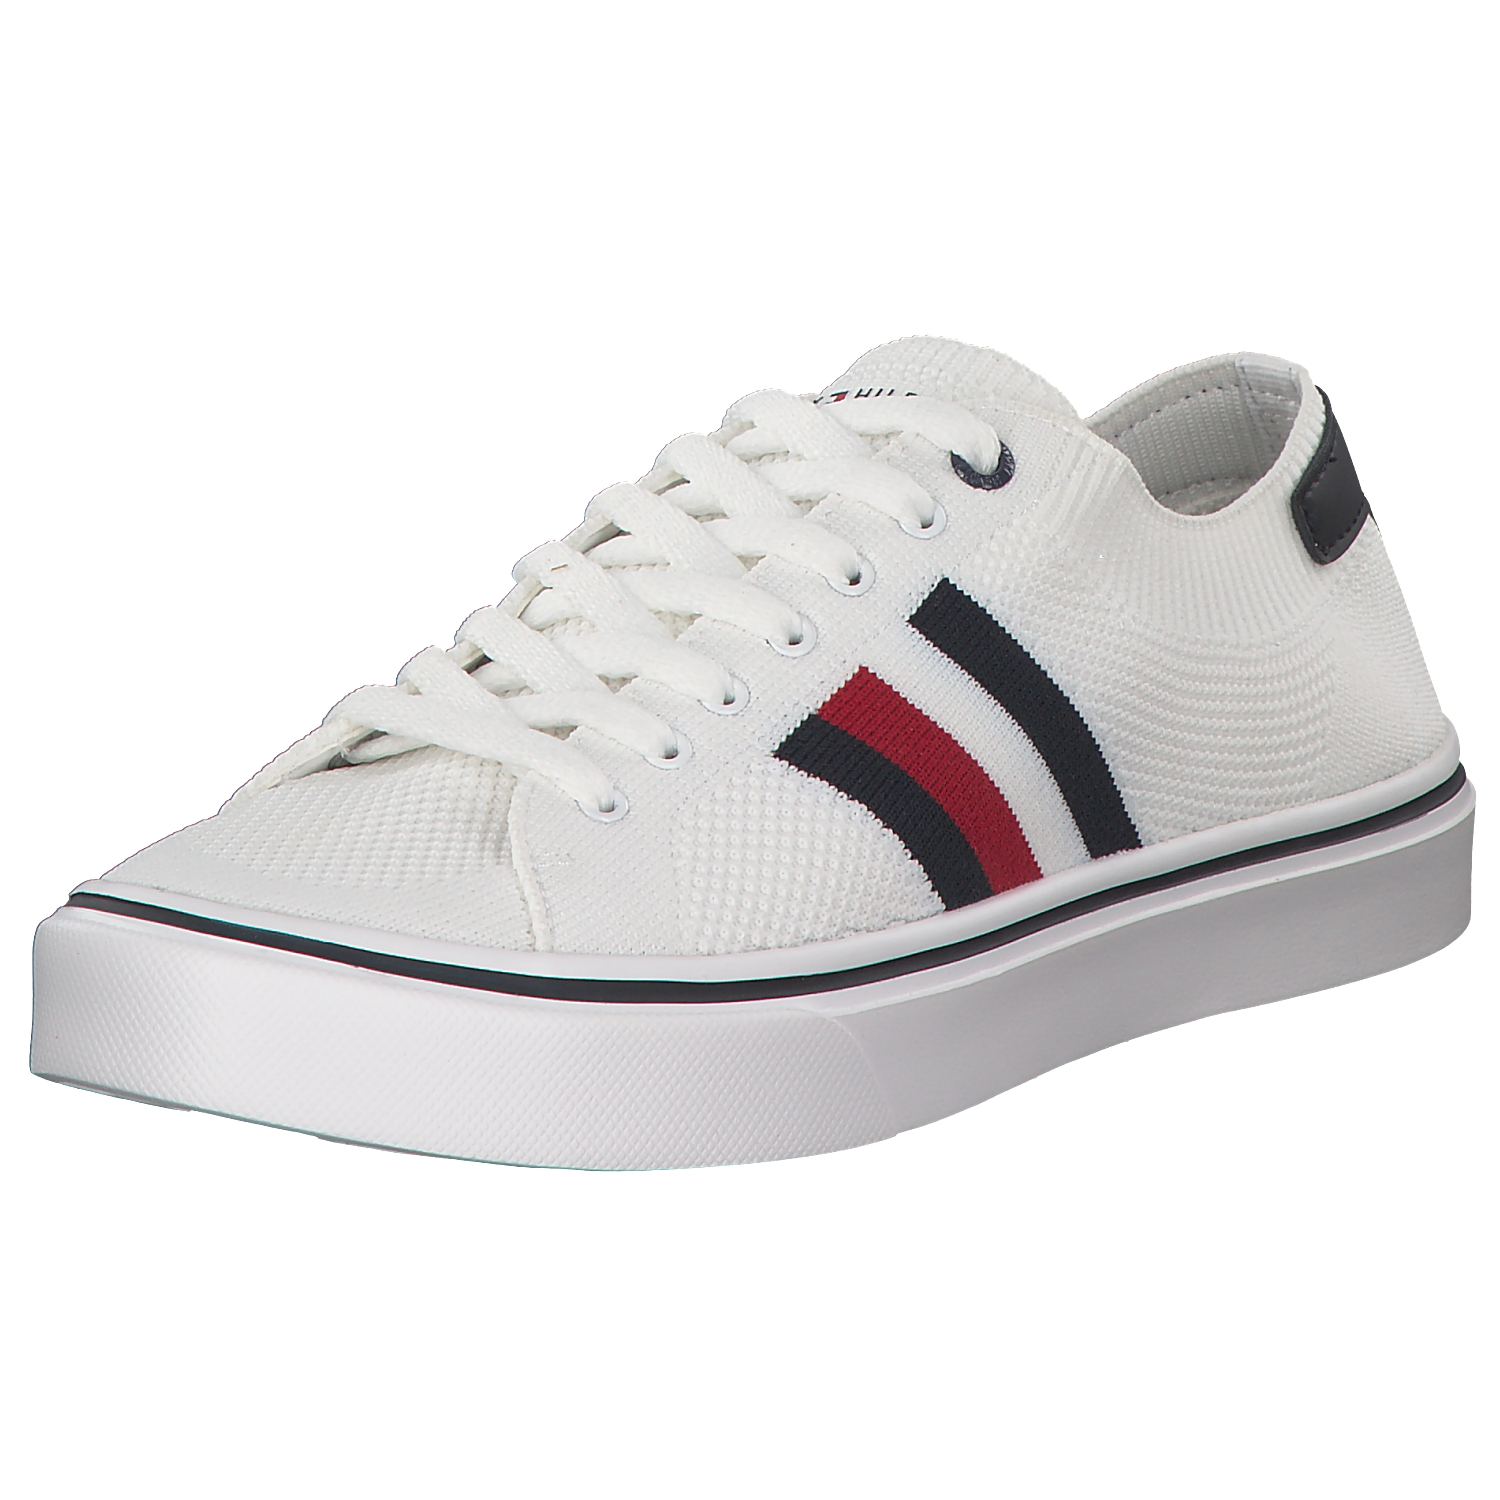 Sneakers sneakers FM0FM01619-100 bianco Tommy Hilfiger uomo nuovo 83cf8bad1c0